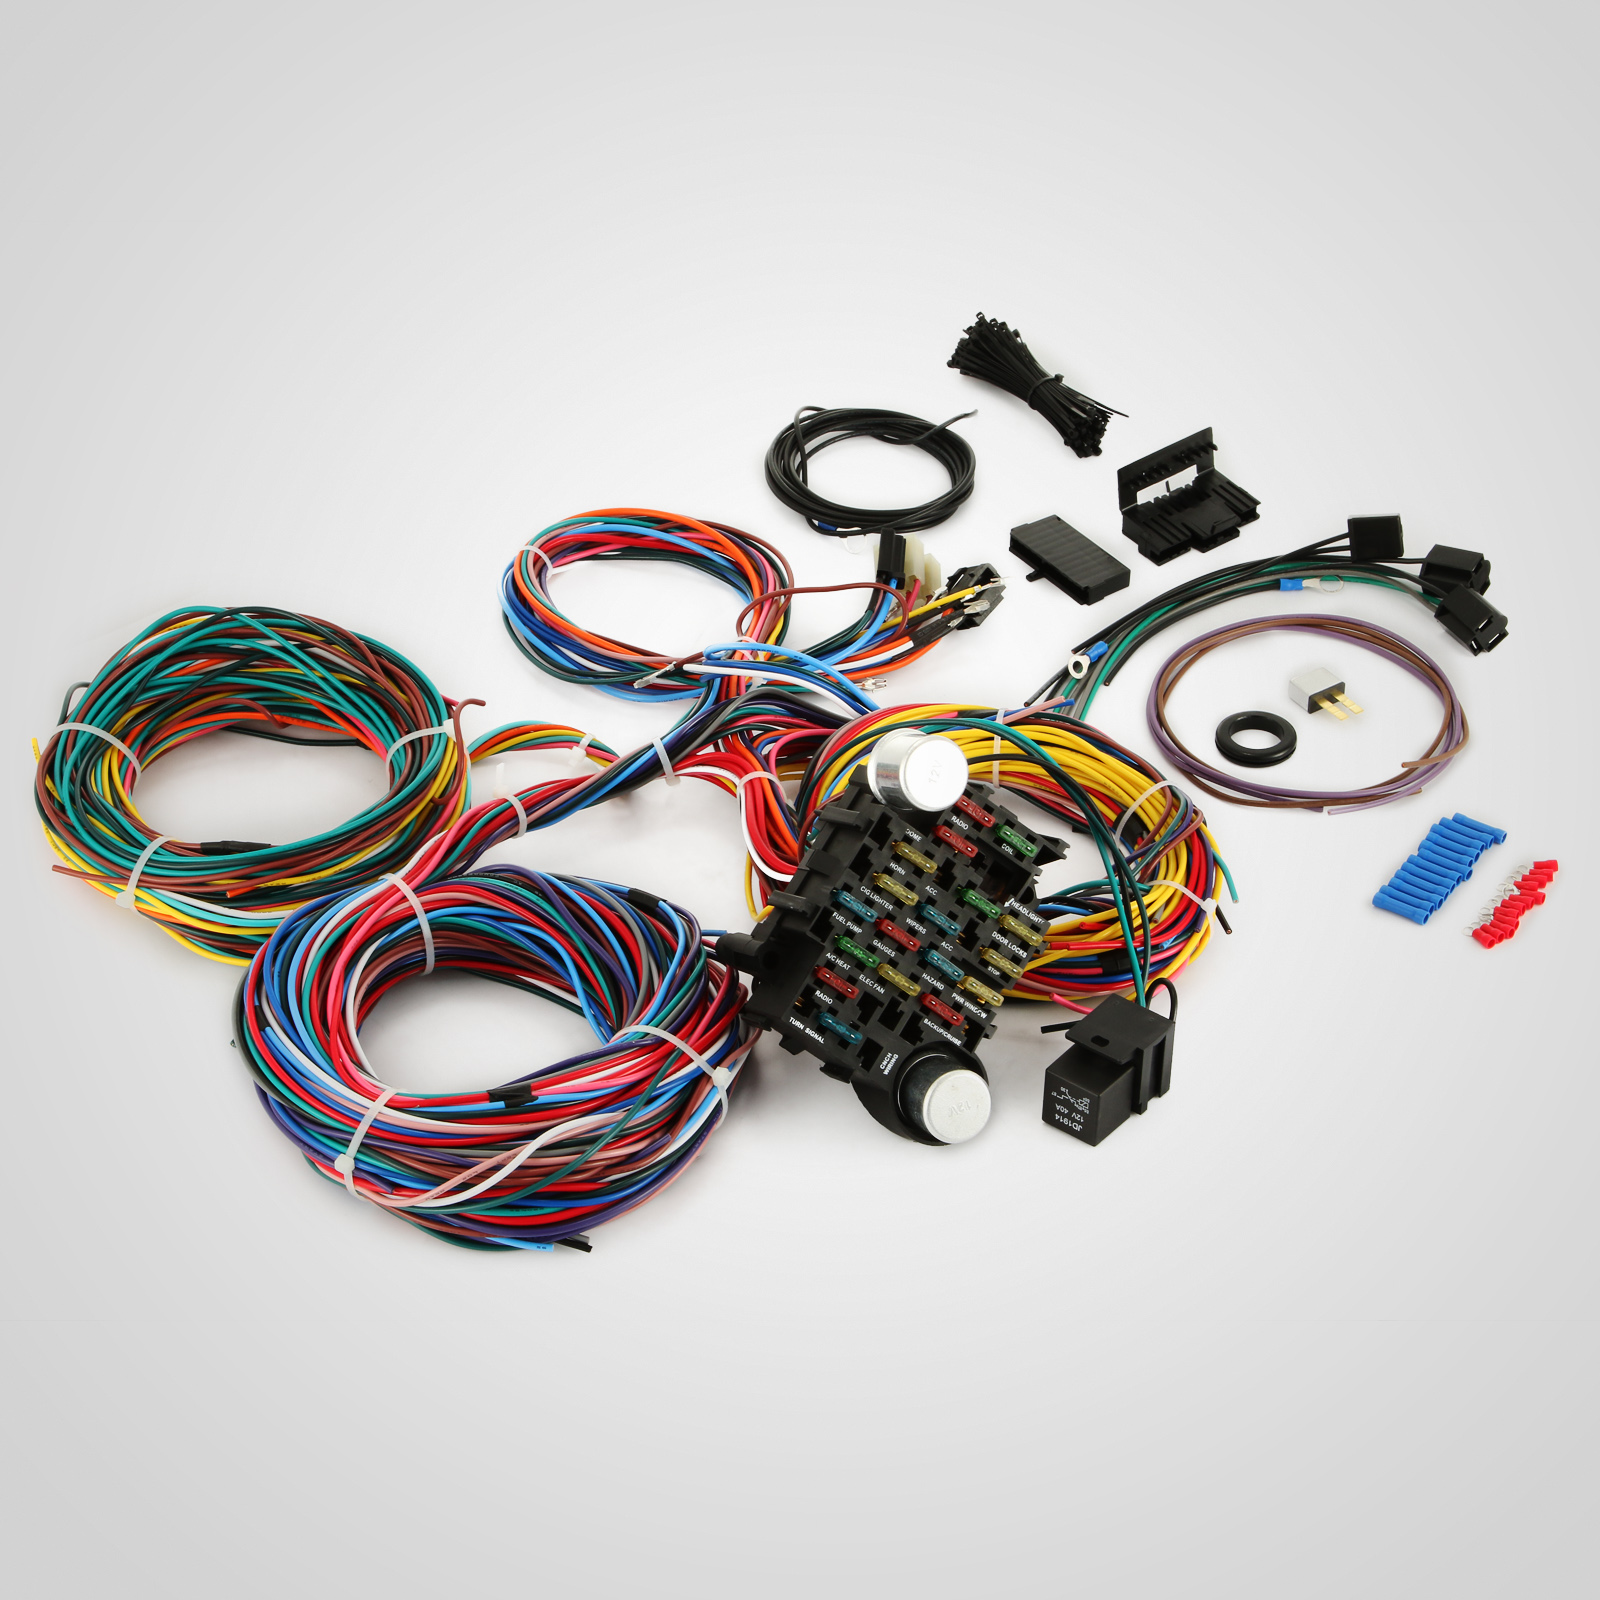 d109 3 21 circuit ez wiring harness chevy universal extra ford install ebay ez wiring harness 21 circuit with gm column at gsmx.co